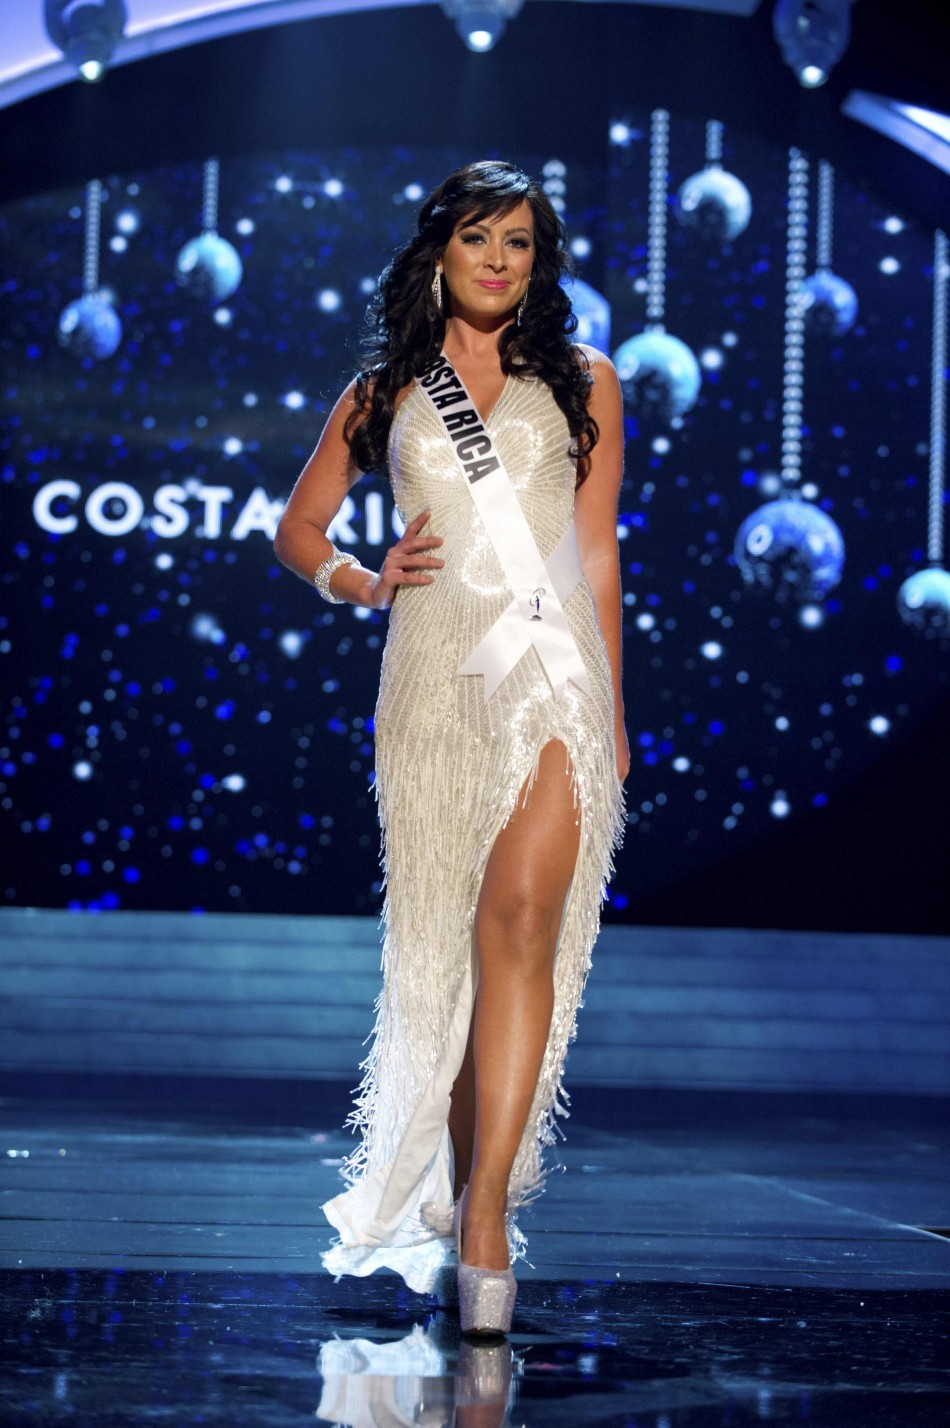 Miss Costa Rica 2012 Cascante competes during the 2012 Miss Universe Presentation Show in Las Vegas